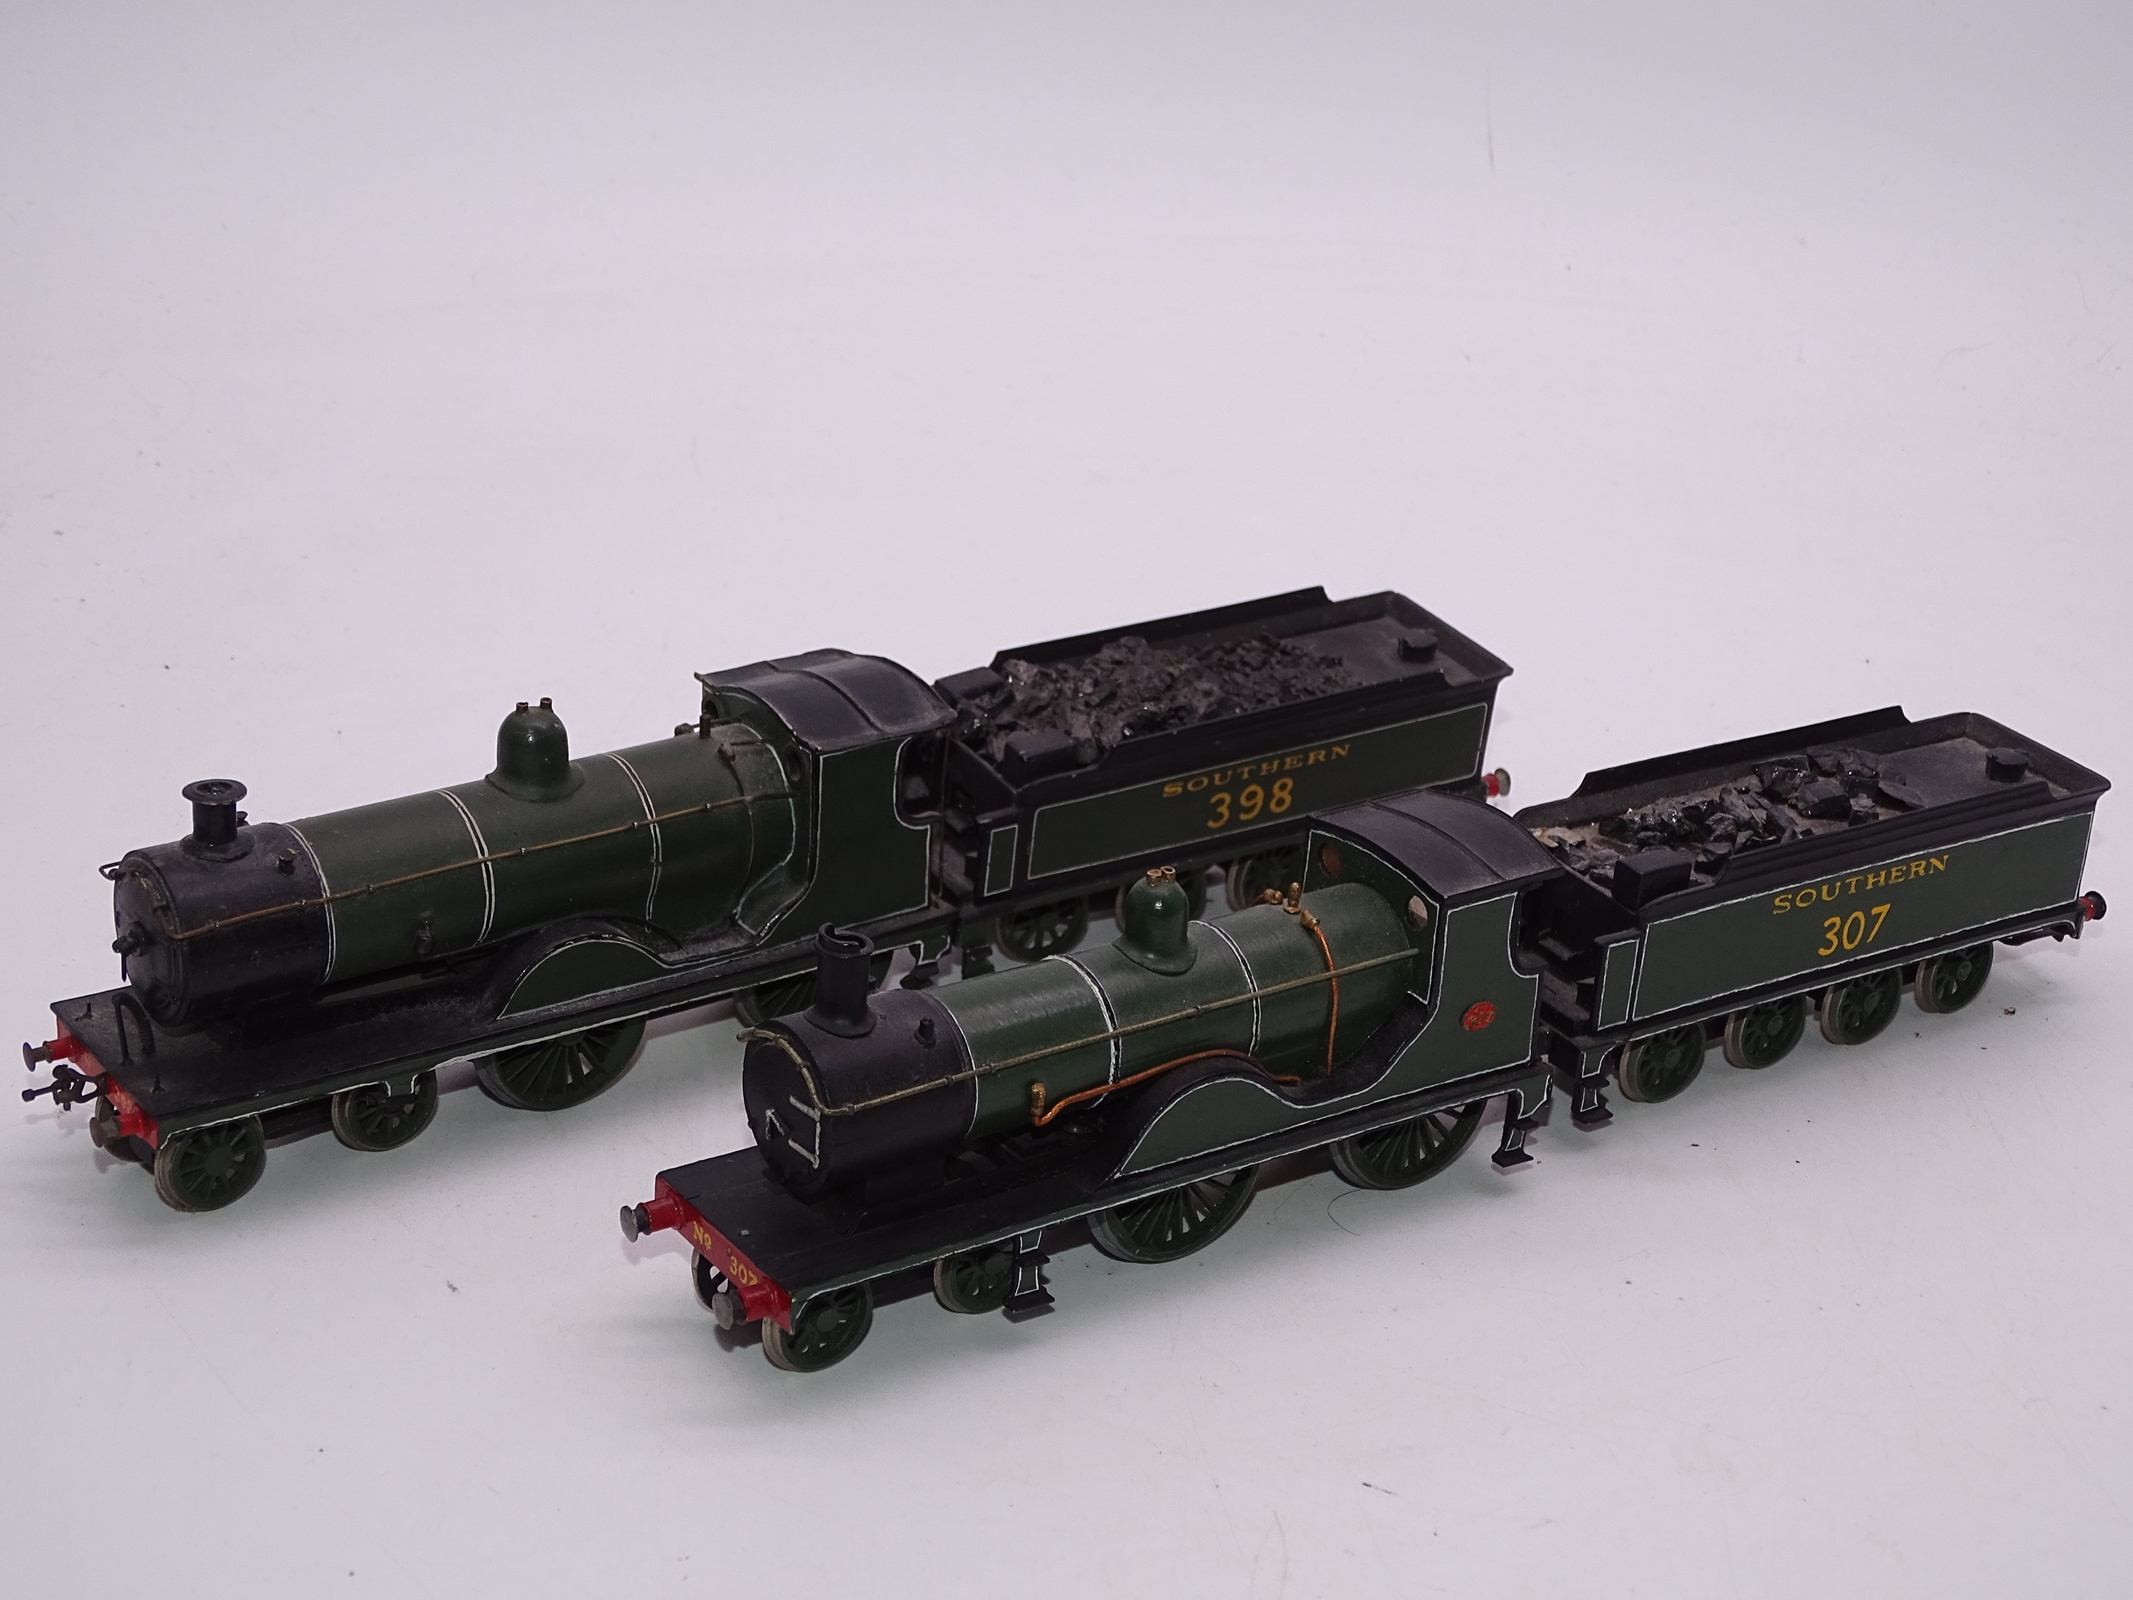 Lot 41 - OO Gauge -A Pair of kit built OO Gauge steam locomotives comprising a Class T9 numbered 307 and a